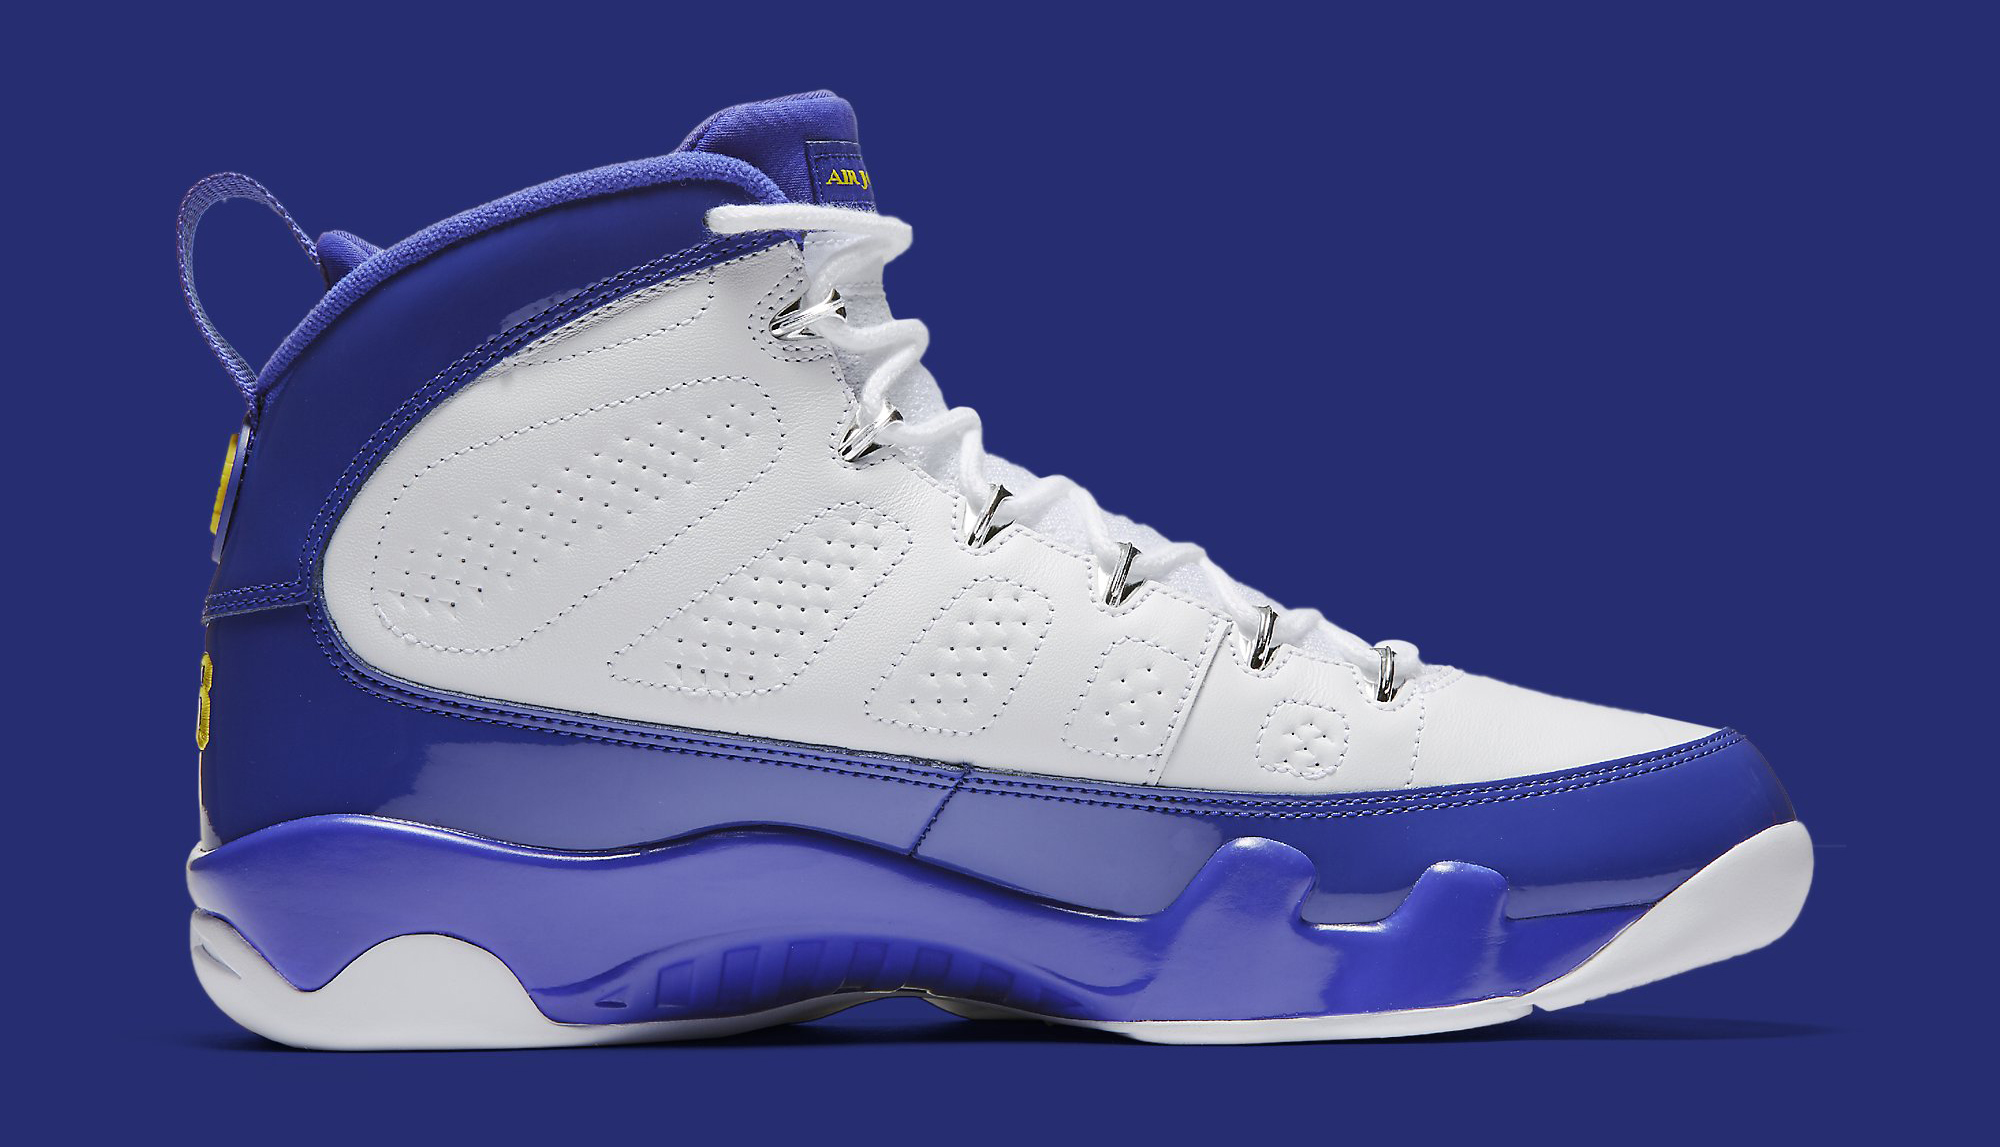 29fb762a8874 Image via Nike Kobe Air Jordan 9 302370-121 Medial